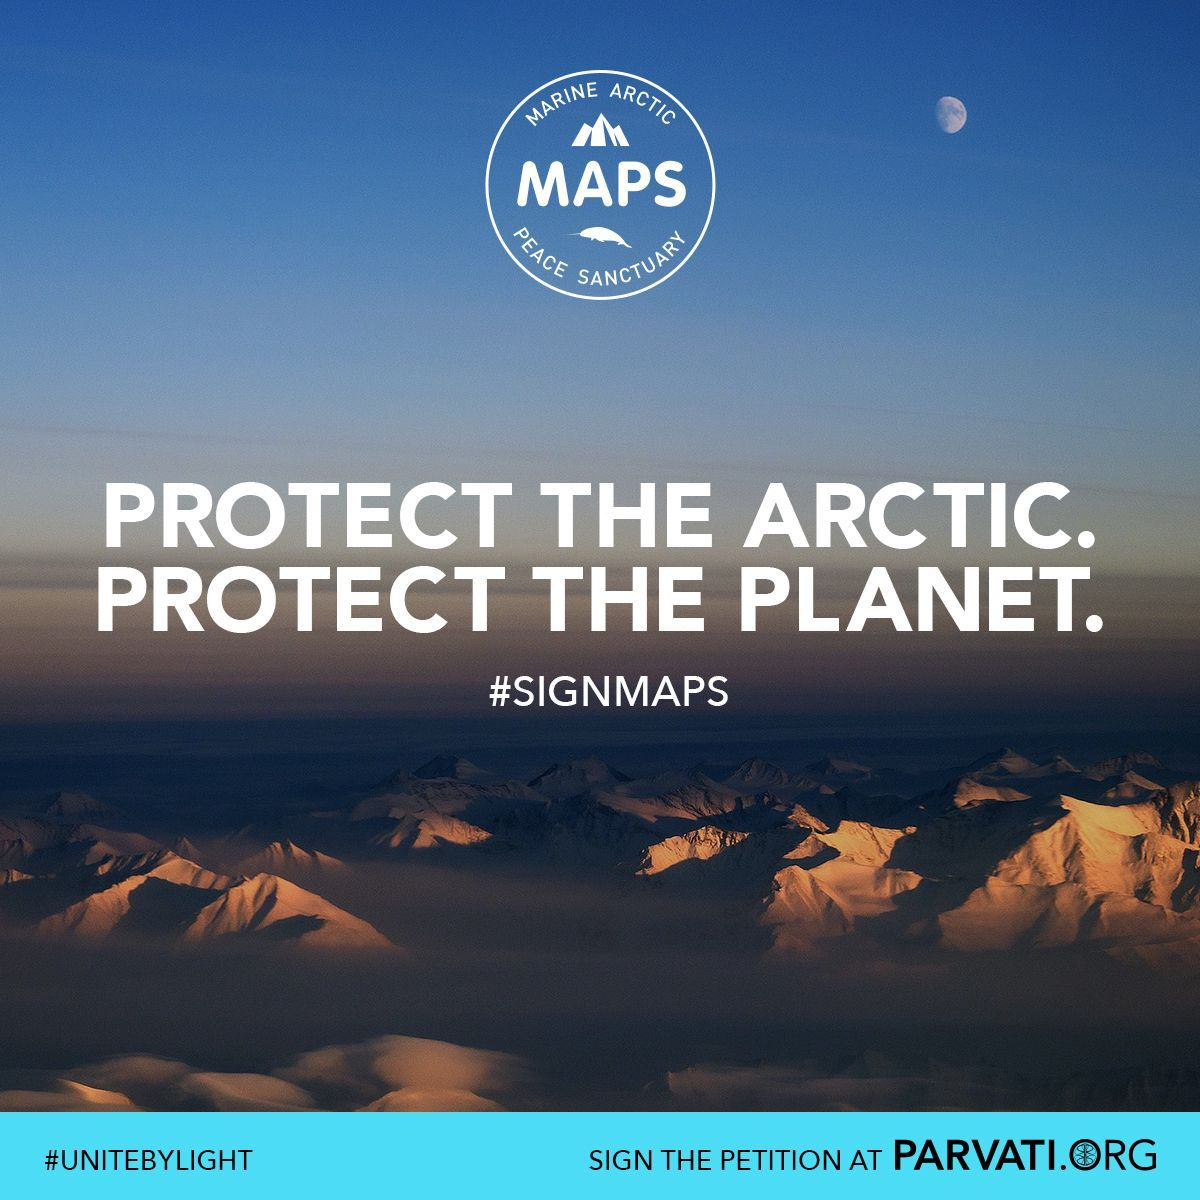 The Polar Ice Is A Natural Resource Protecting Our Planet